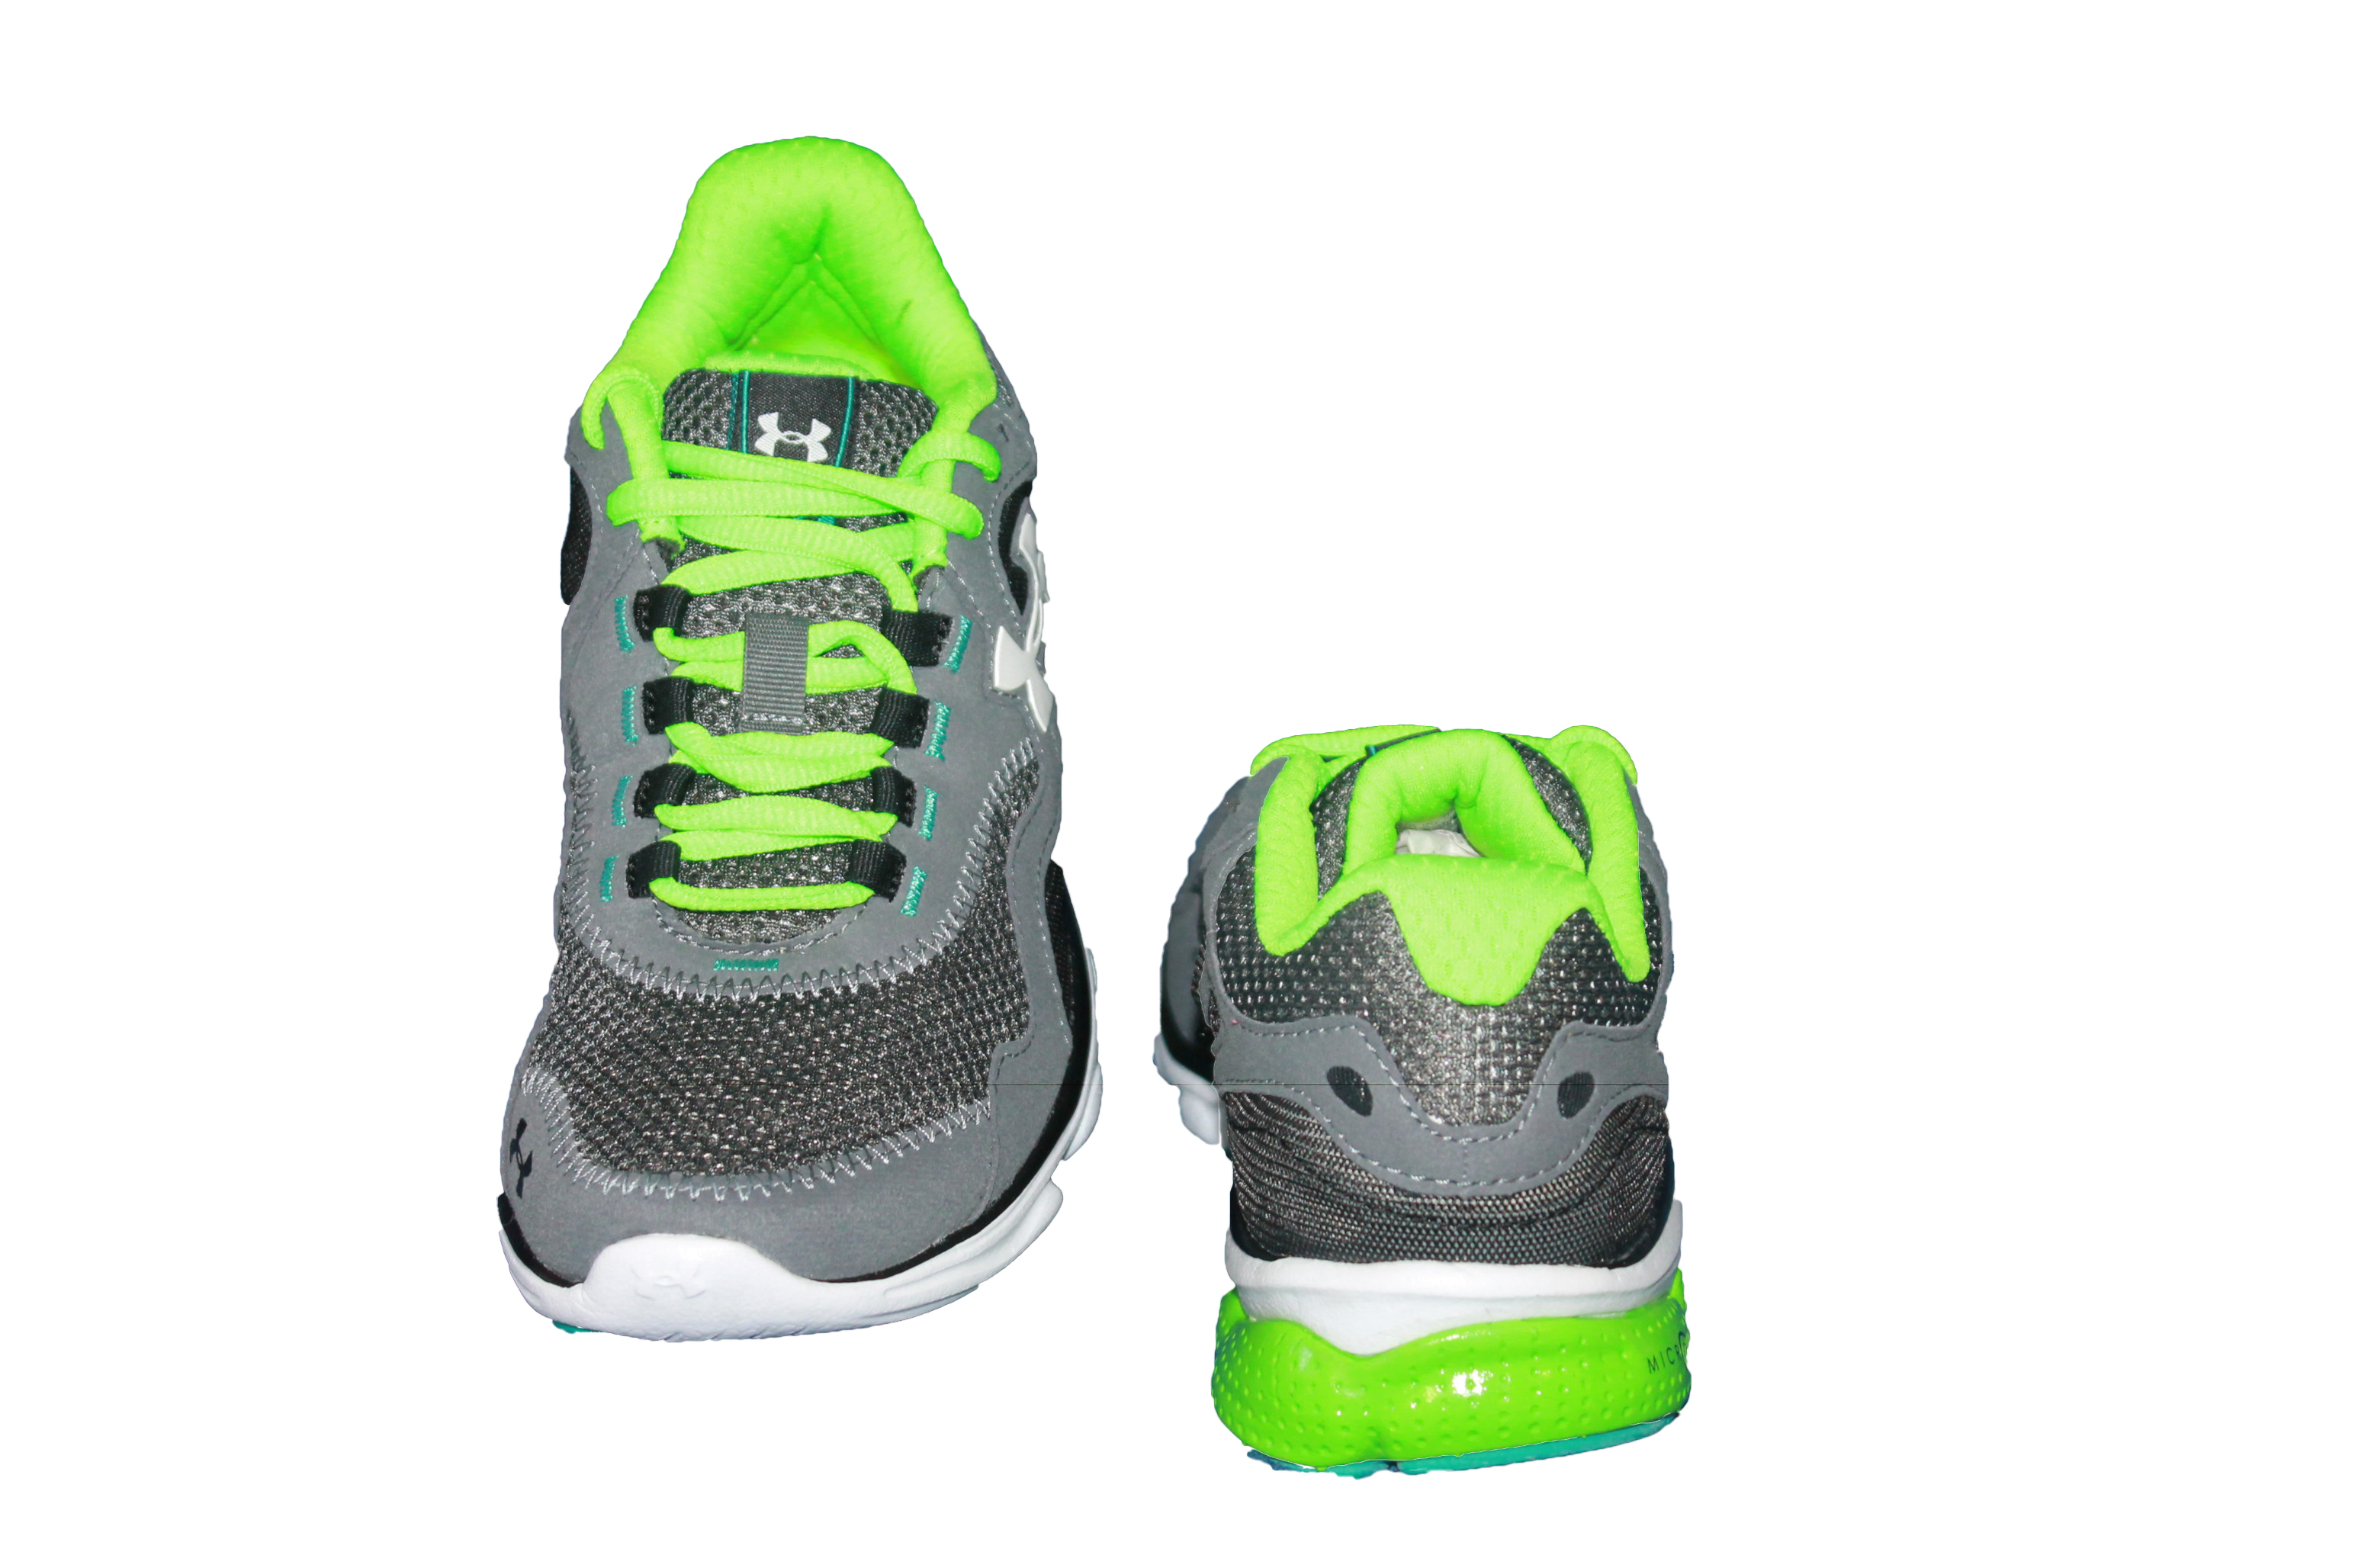 Under Armour Women's Assert III Economical, stylish, and eye-catching shoes